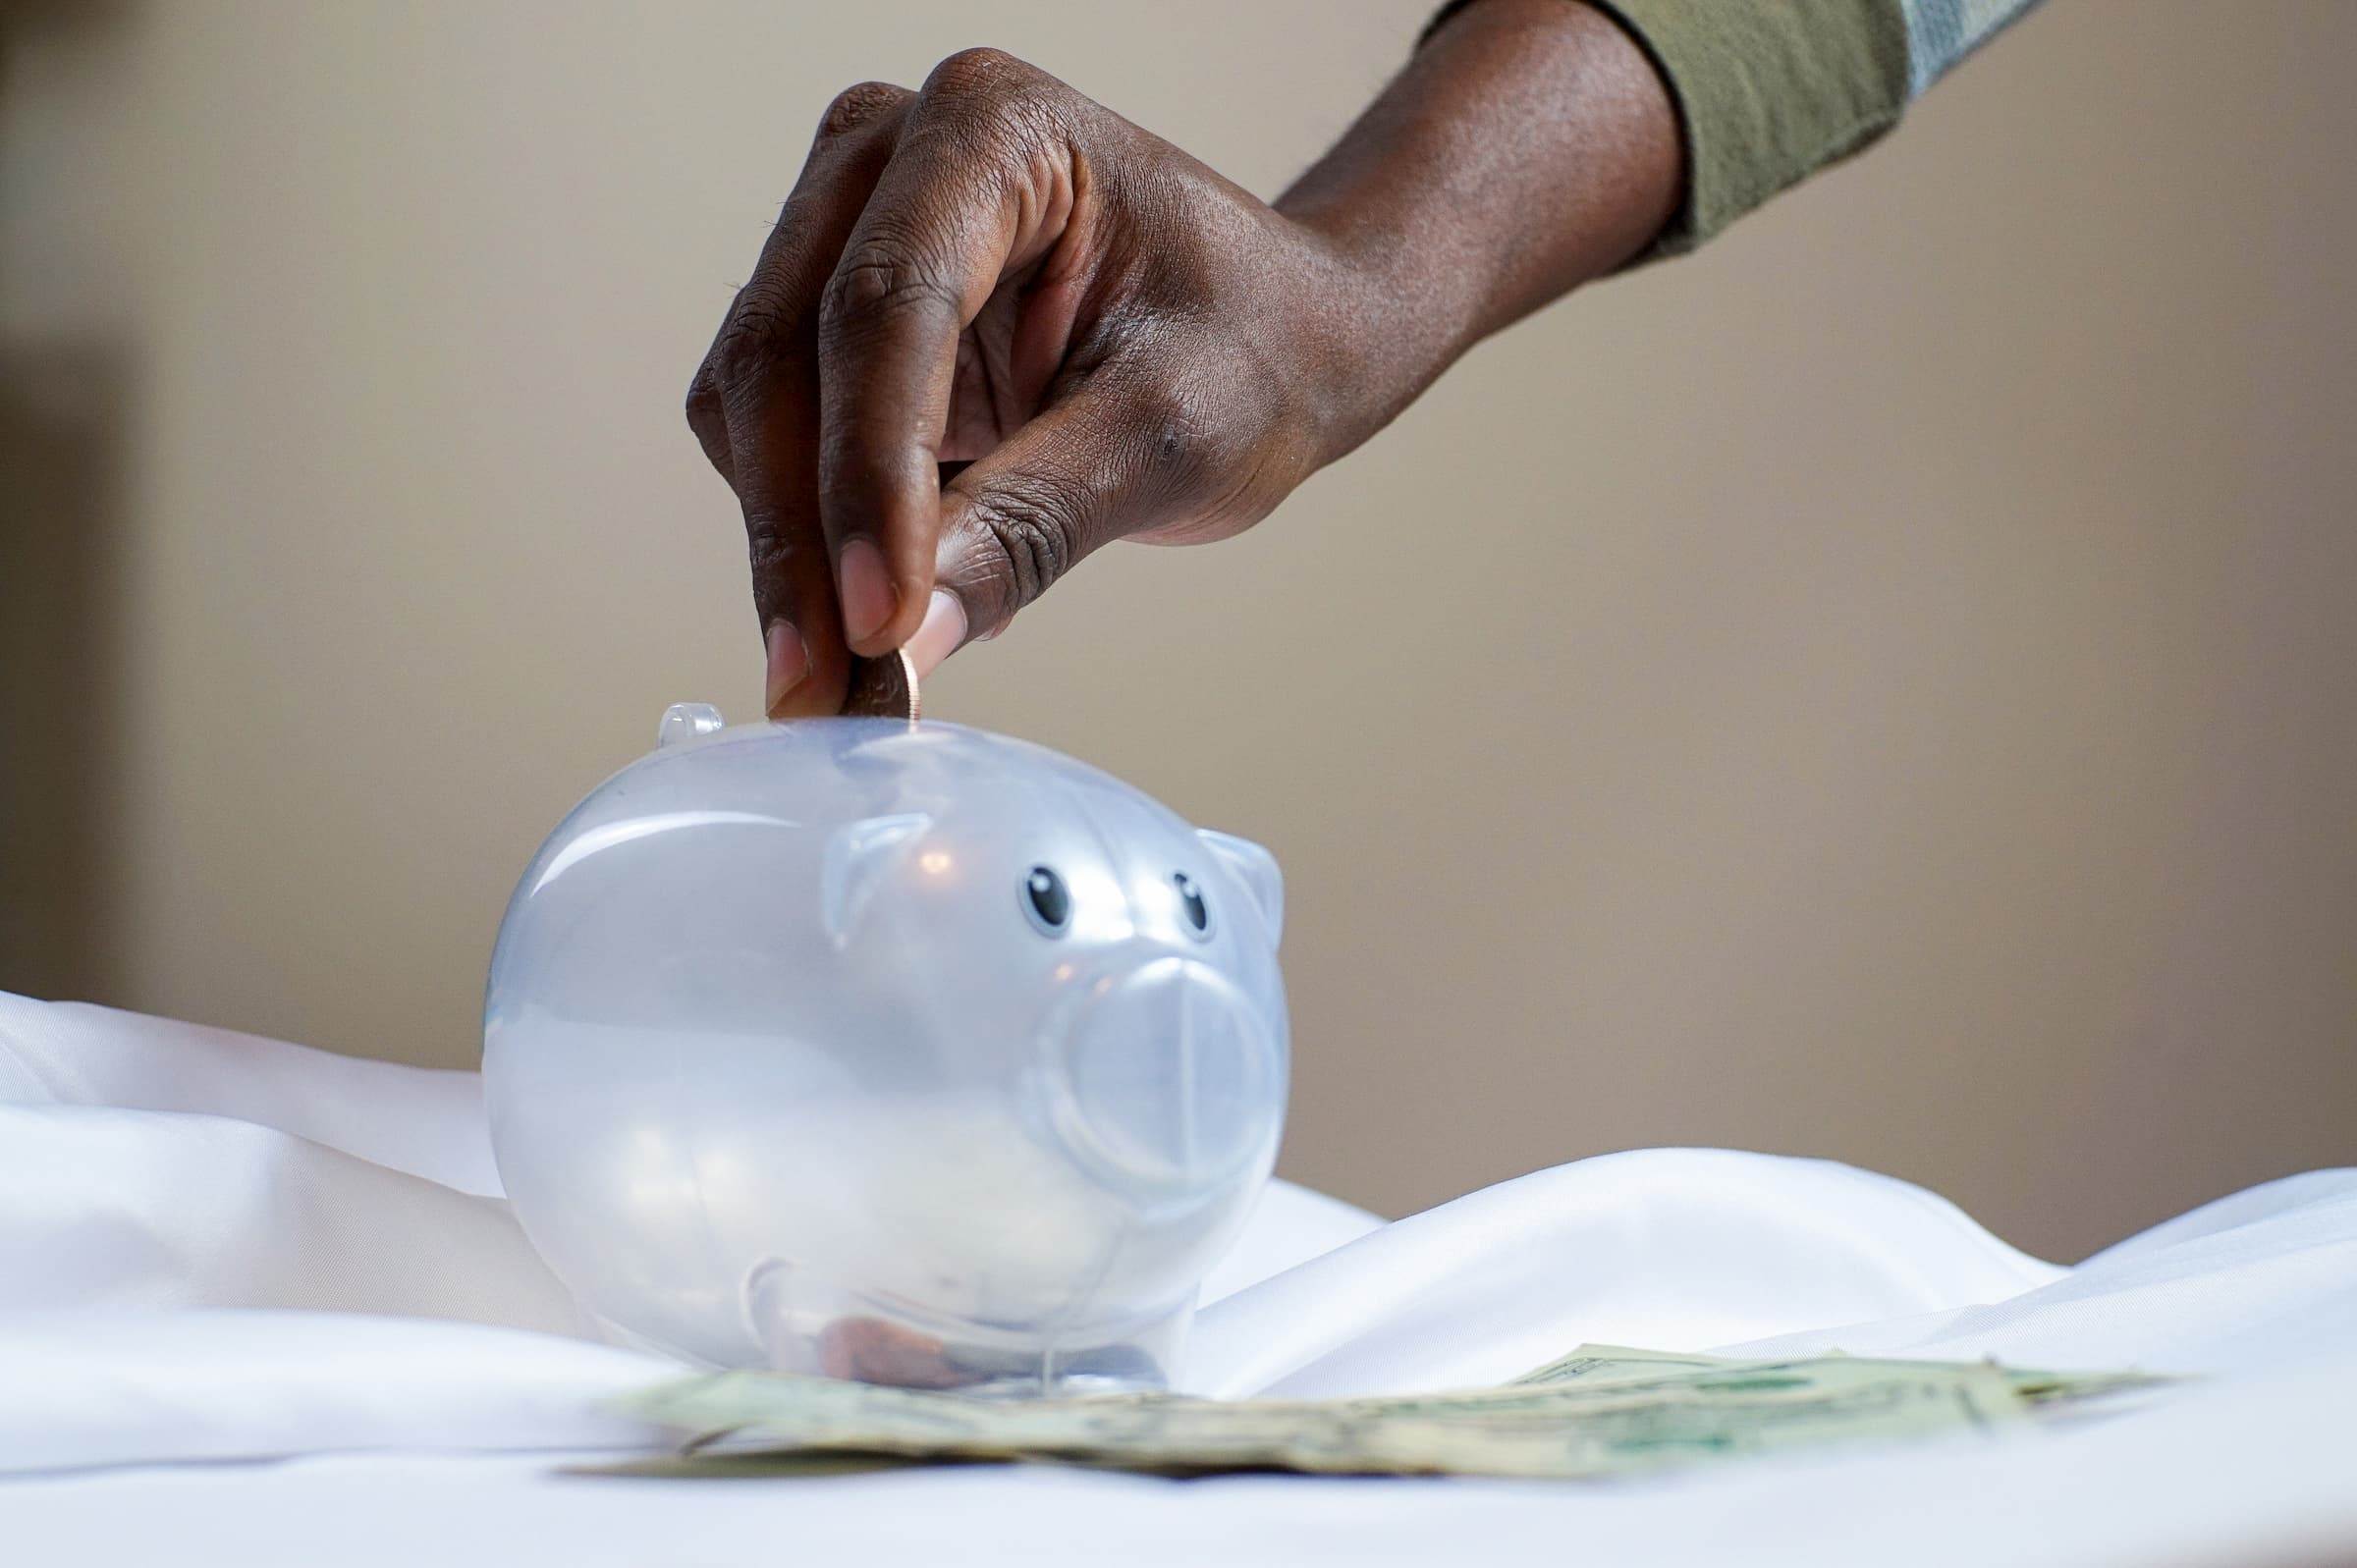 black hand putting change into clear piggy bank - healthcare costs, price transparency